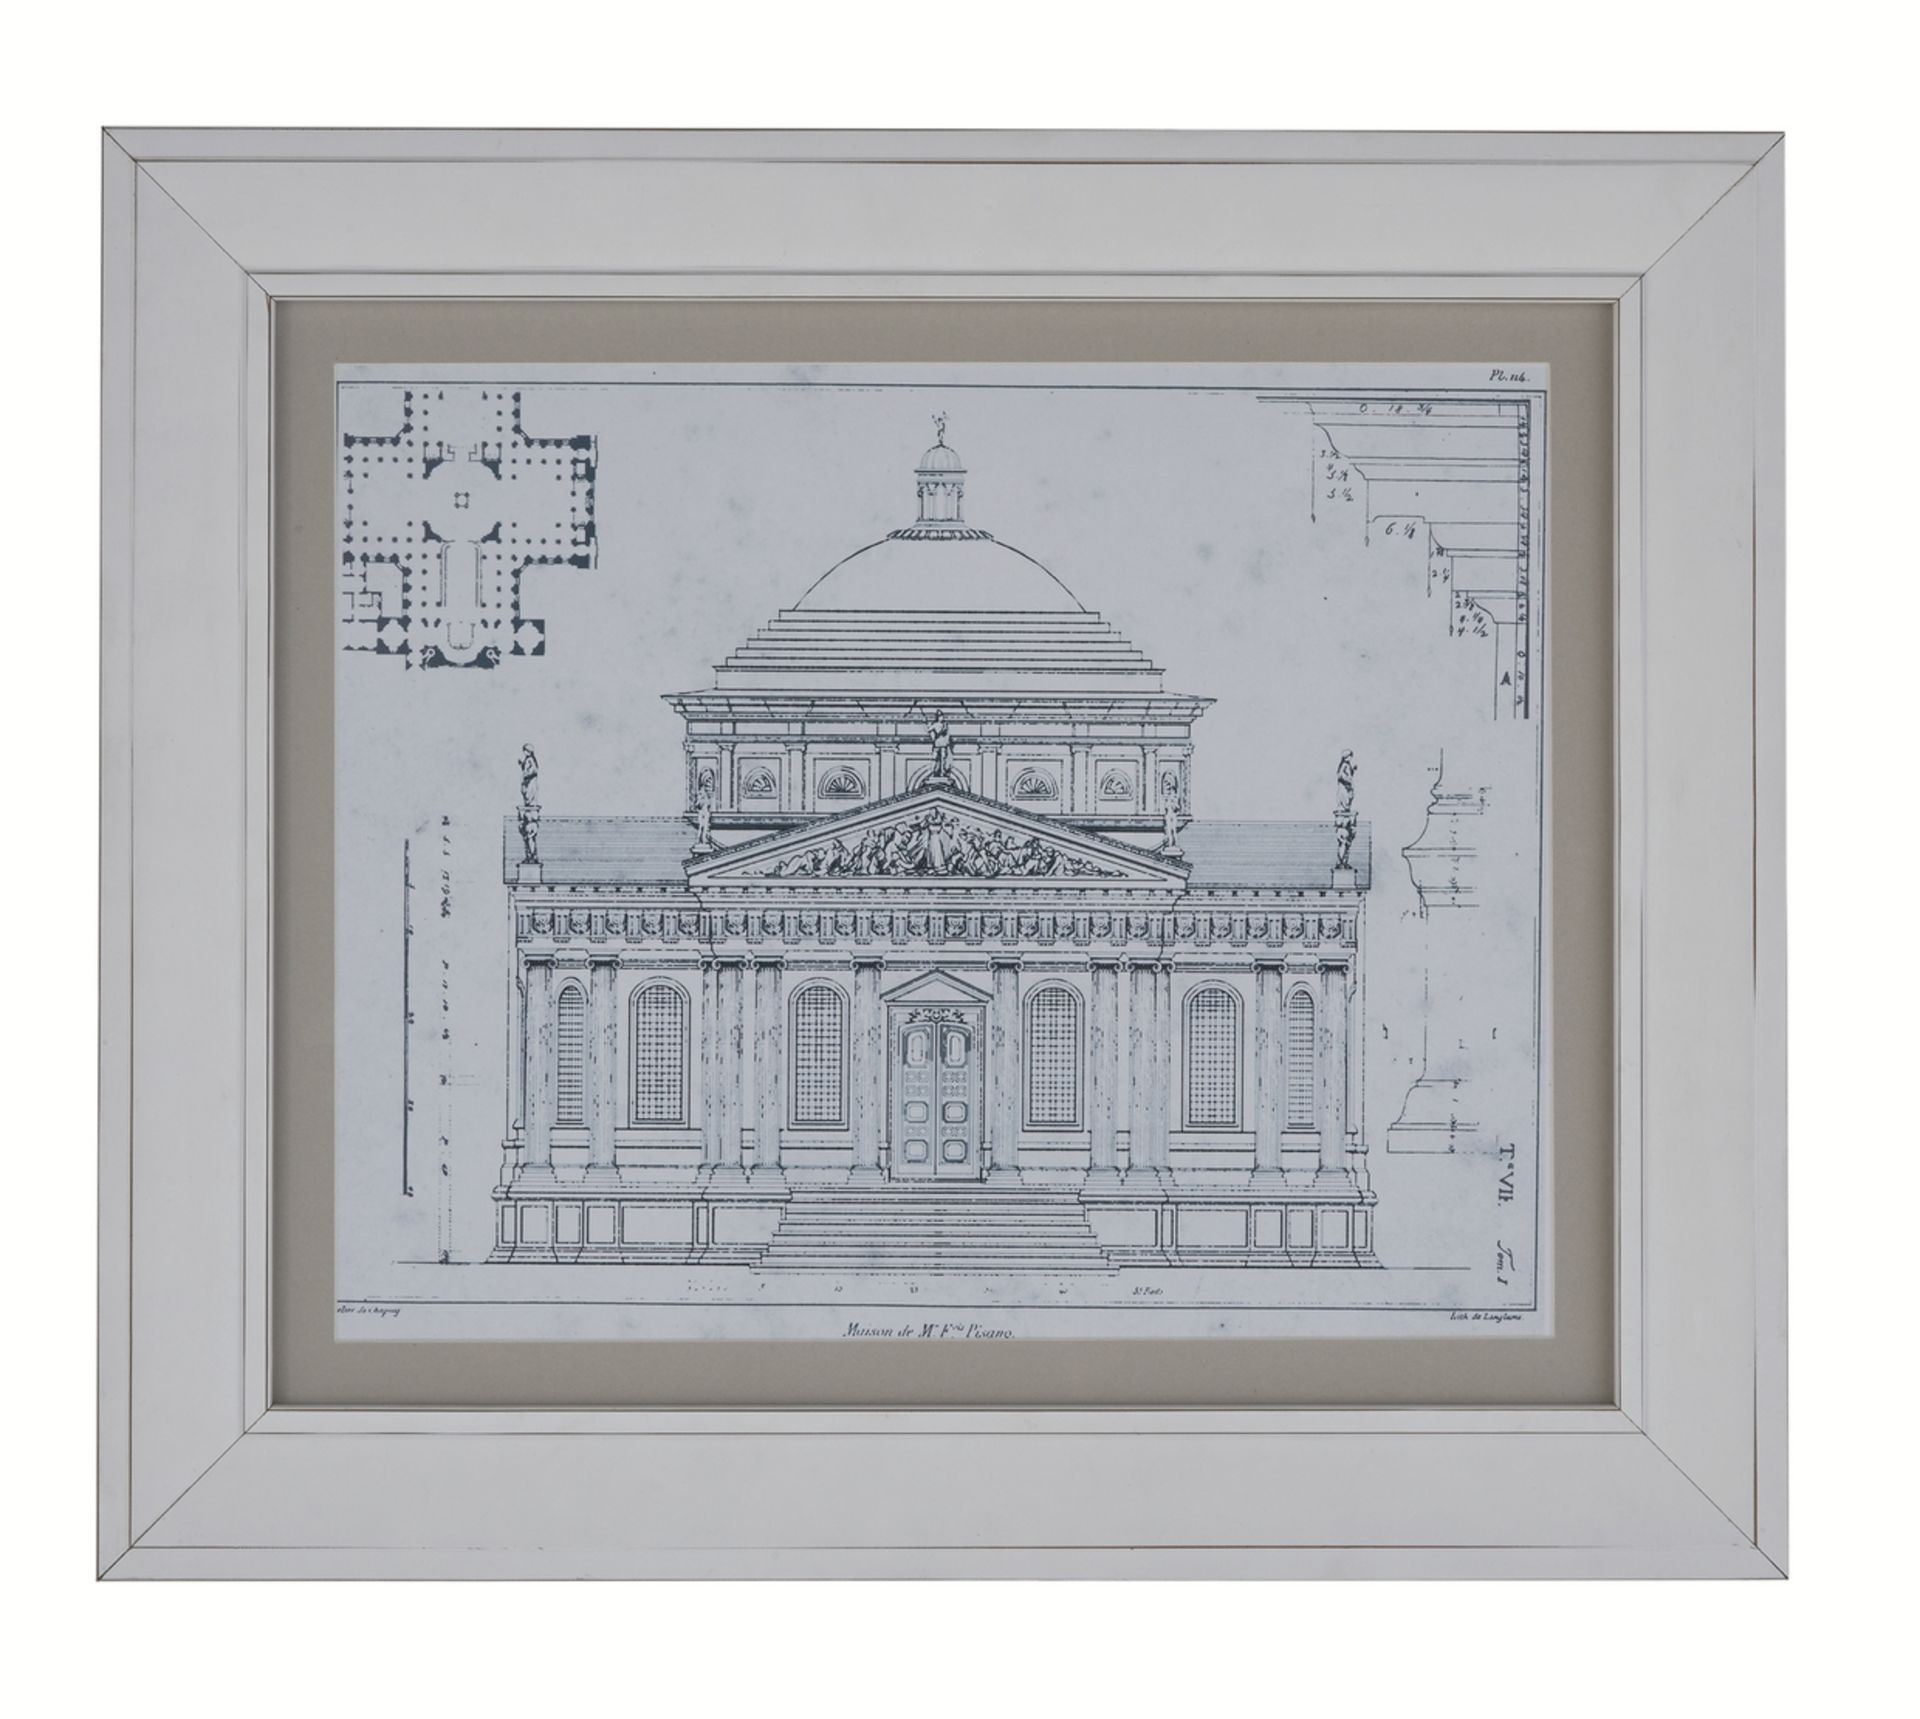 Lot 94 - 87 items Mixed Lot - Brand New Interior Décor WallArt/Canvases from Arthouse, Approx RRP £799.32